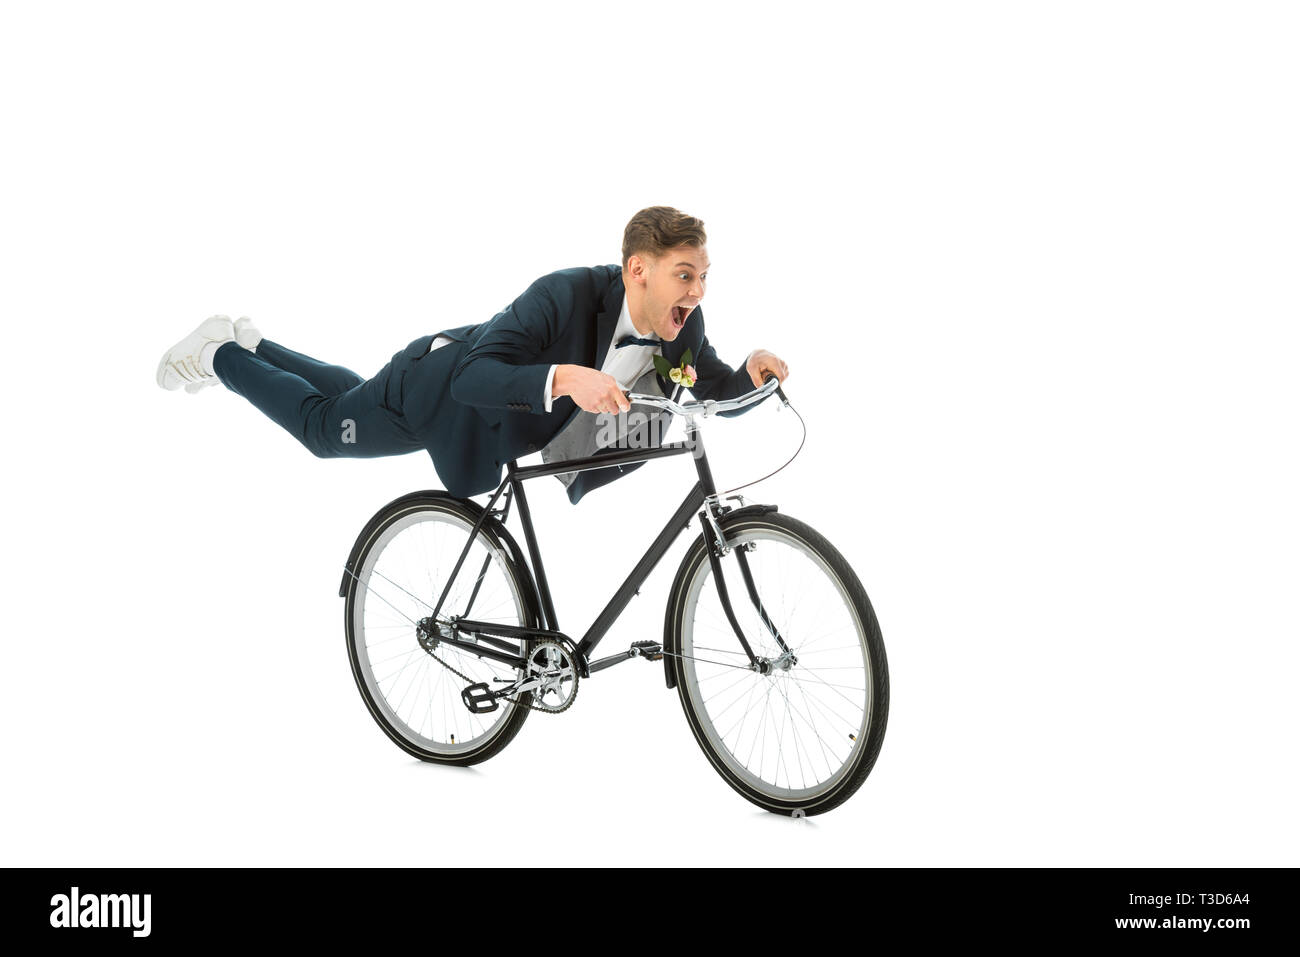 excited groom in elegant suit making stunts on bike isolated on white - Stock Image